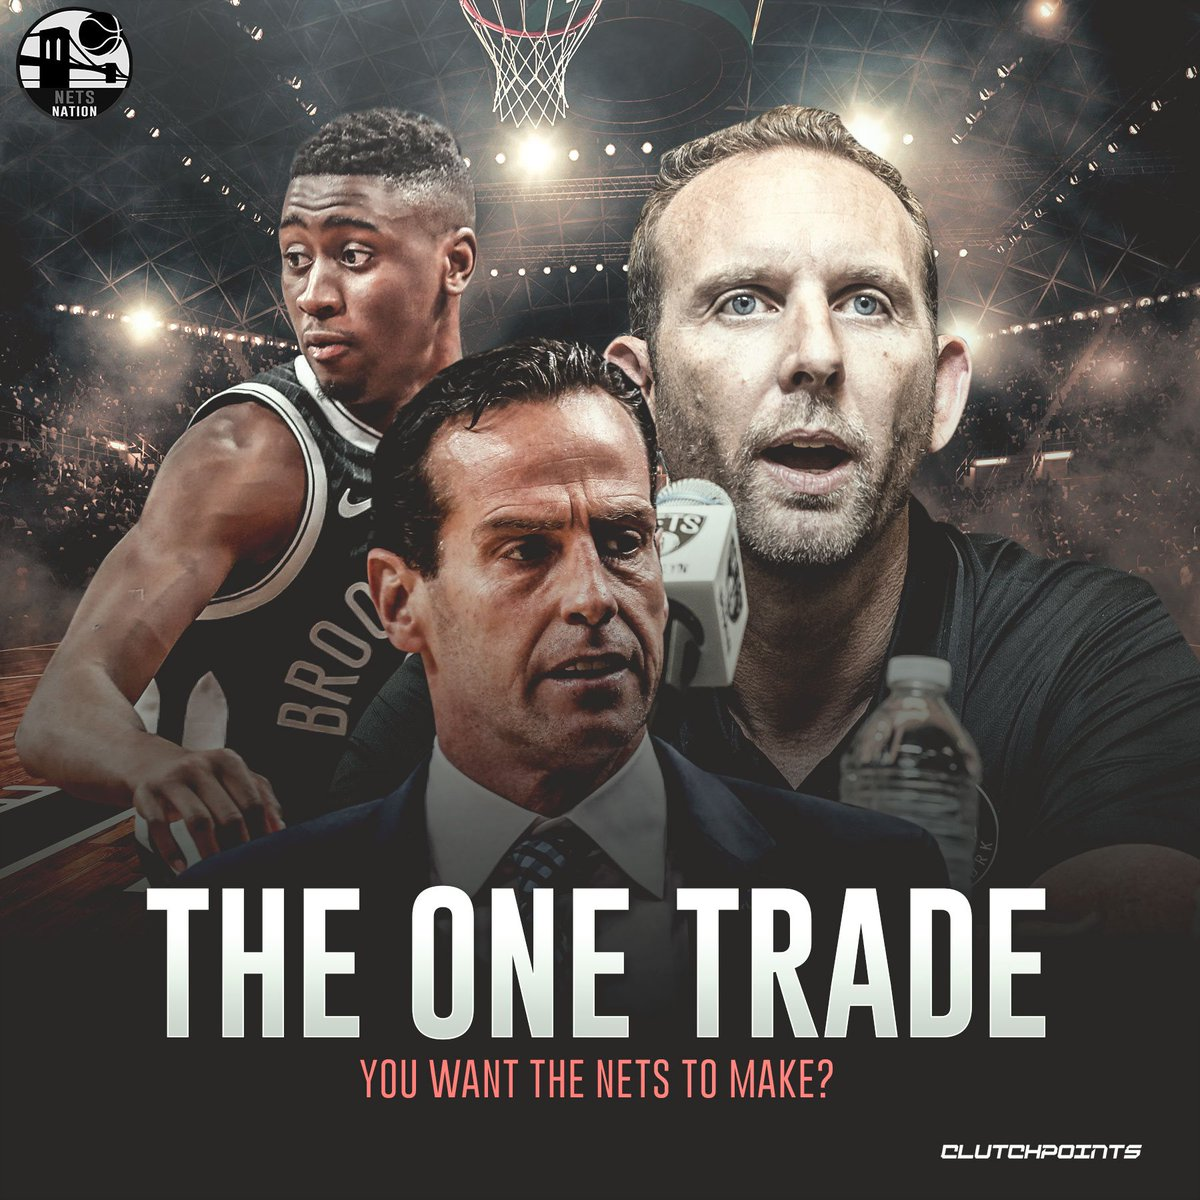 Let your ideal trade scenario be known, Nets Nation. 👇  #WeGoHard #Nets